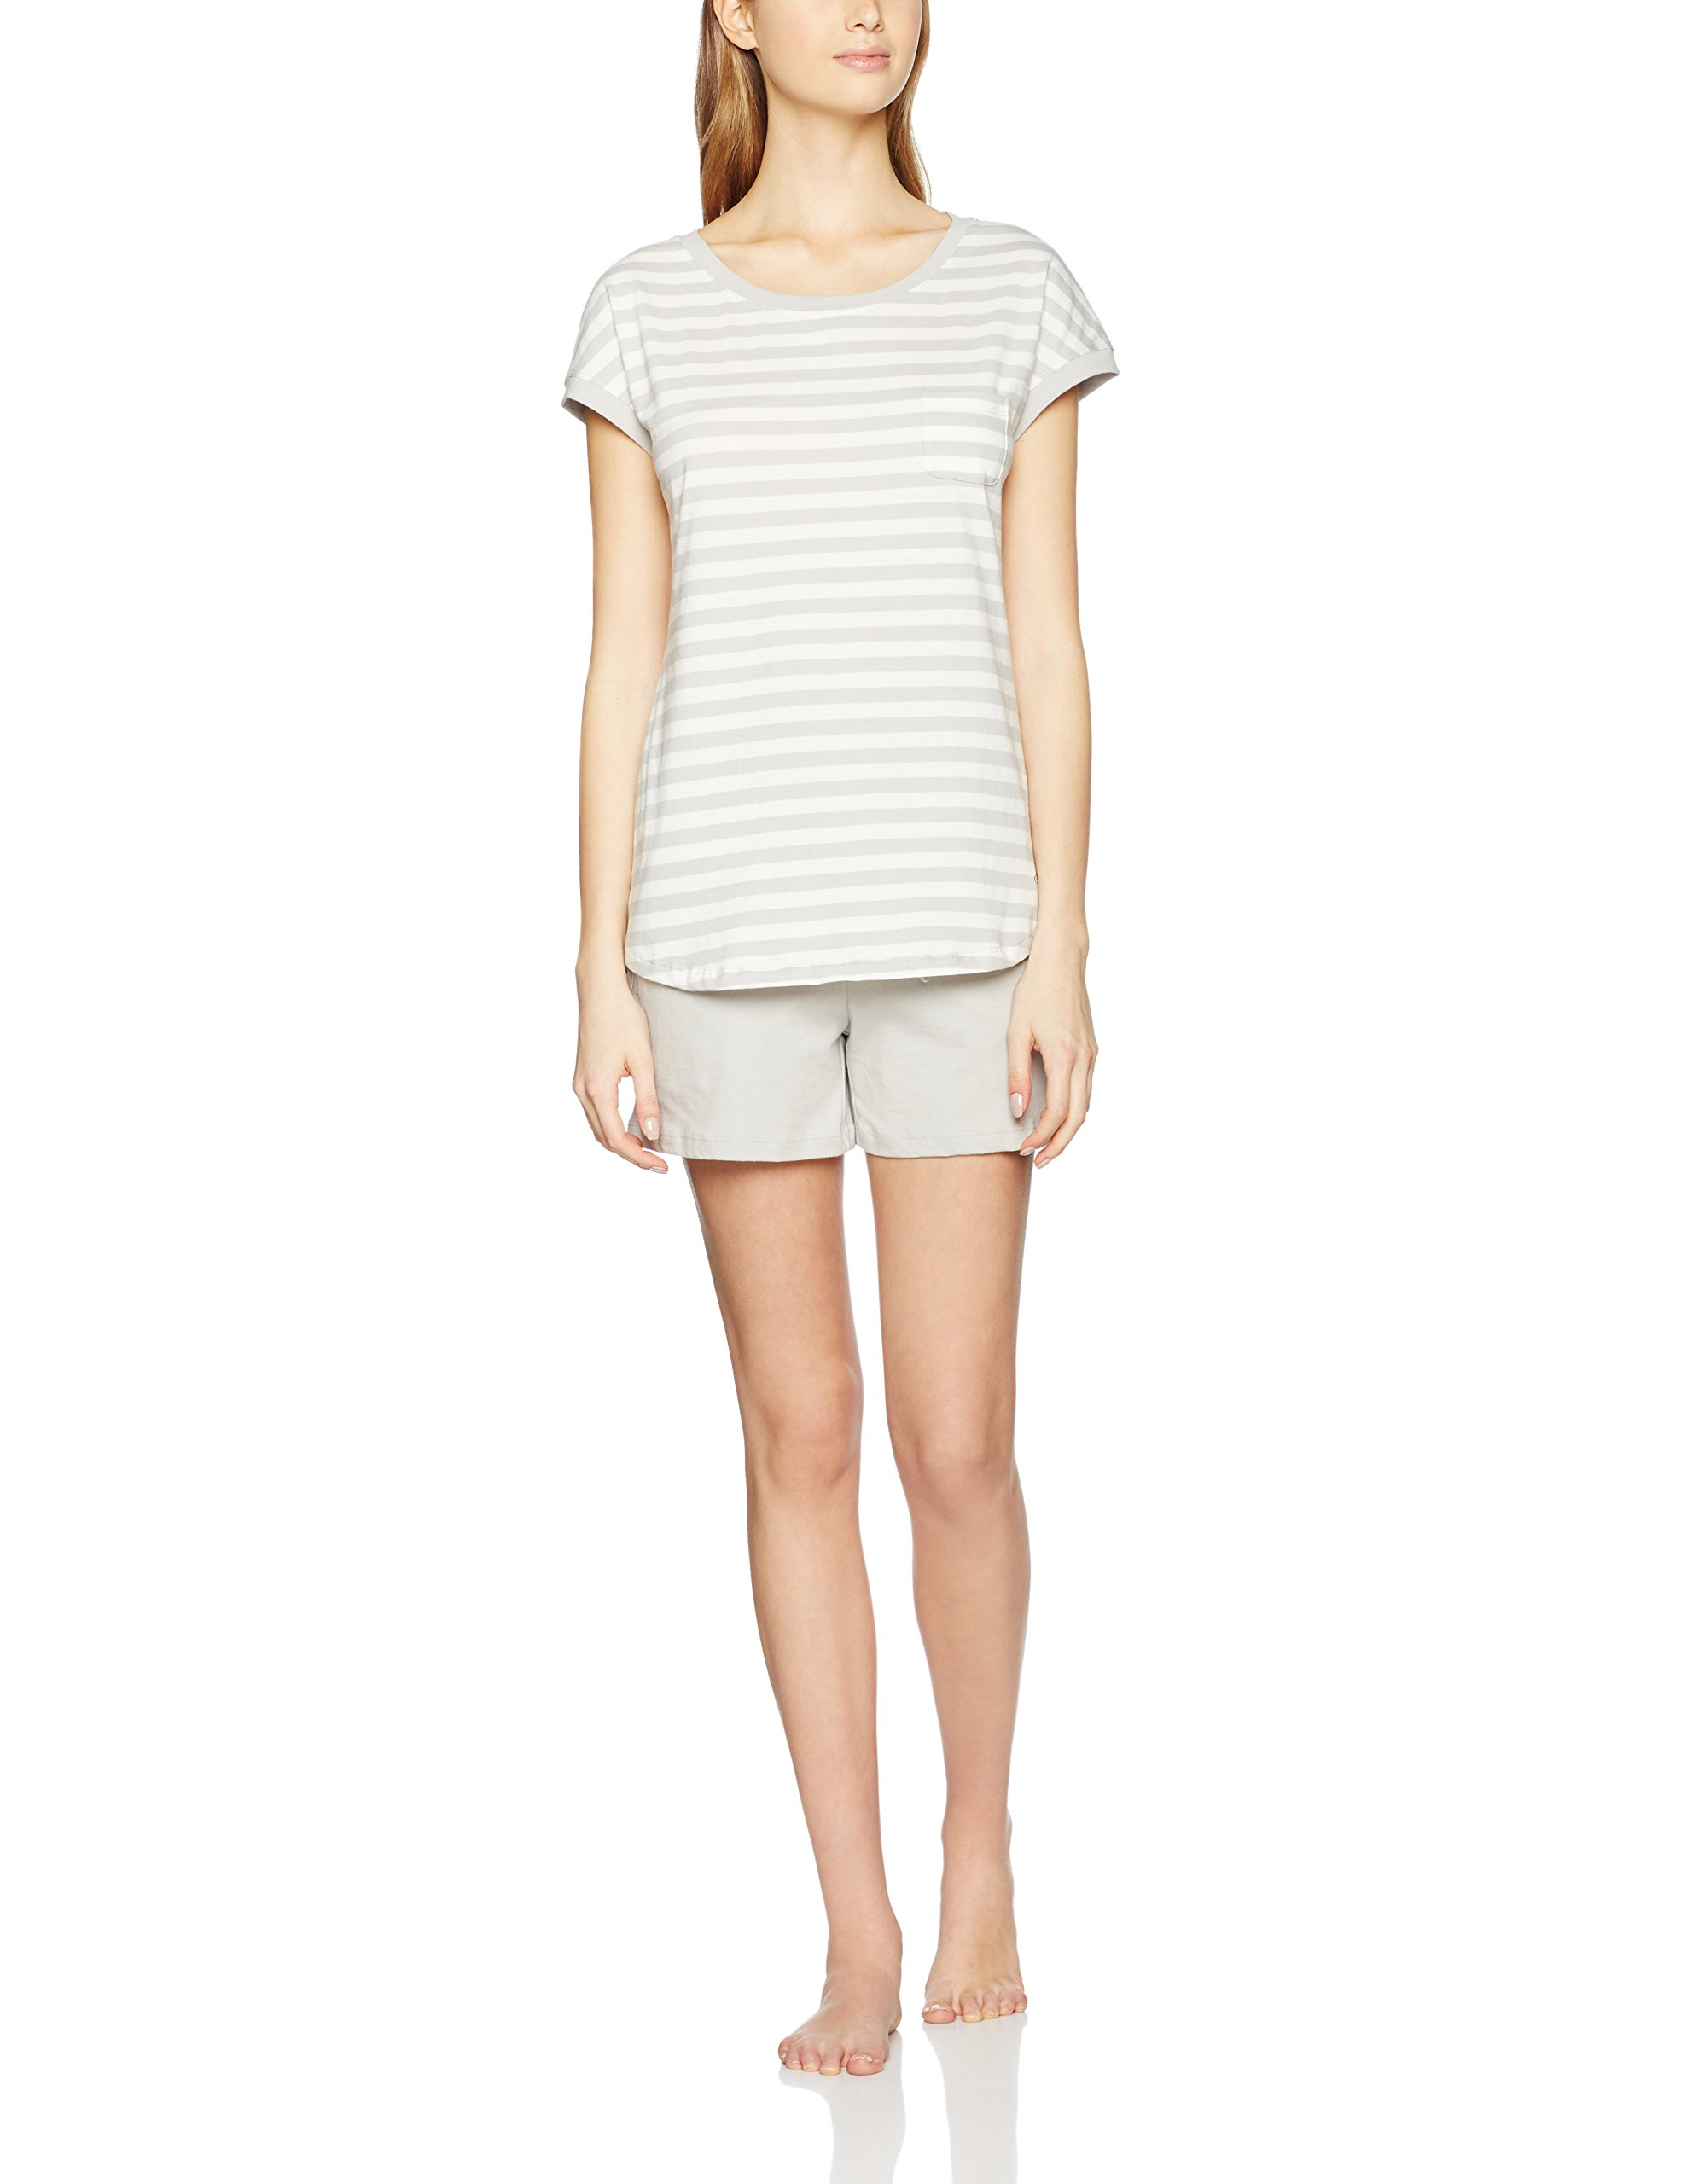 Crew Ensemble O'polo Marc De Femme 20442 Bodyamp; Beach neck PyjamaGrishellgrau CWrxBdoe